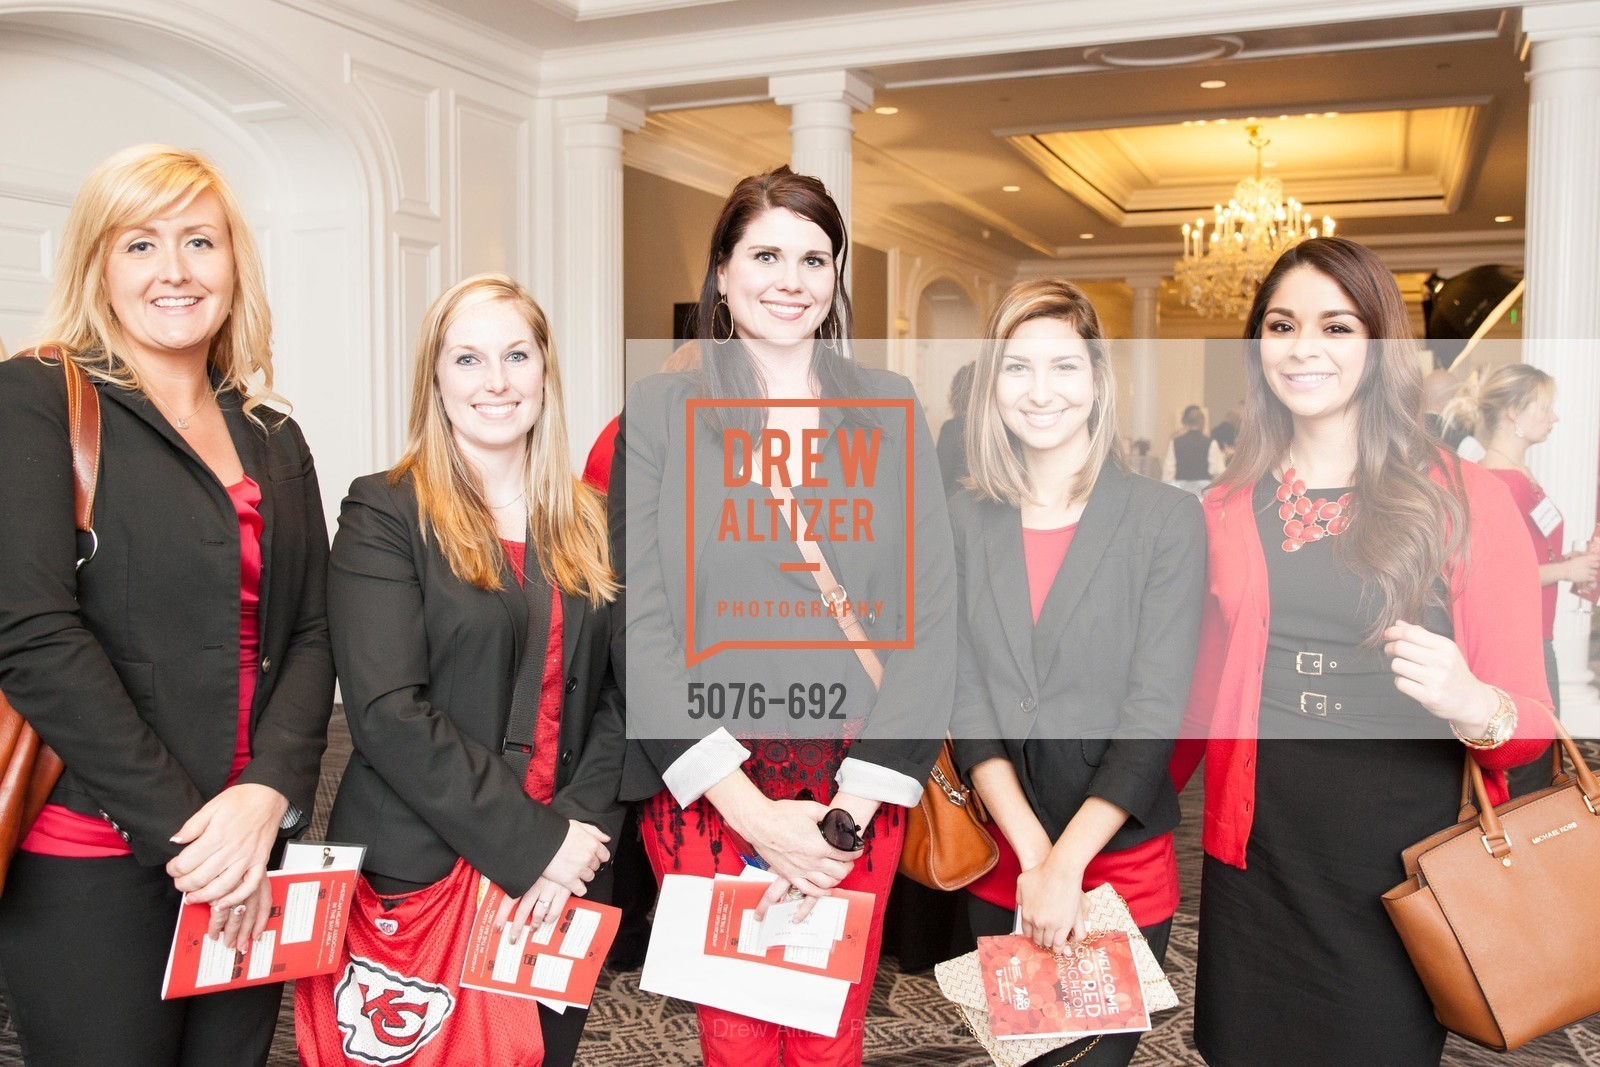 Andrea Wong, Jennifer Fletcher, Marissa Anderson, Chloe Vaille, Jessica Mendoza, 2015 GoRed for Women Luncheon, US, May 2nd, 2015,Drew Altizer, Drew Altizer Photography, full-service agency, private events, San Francisco photographer, photographer california